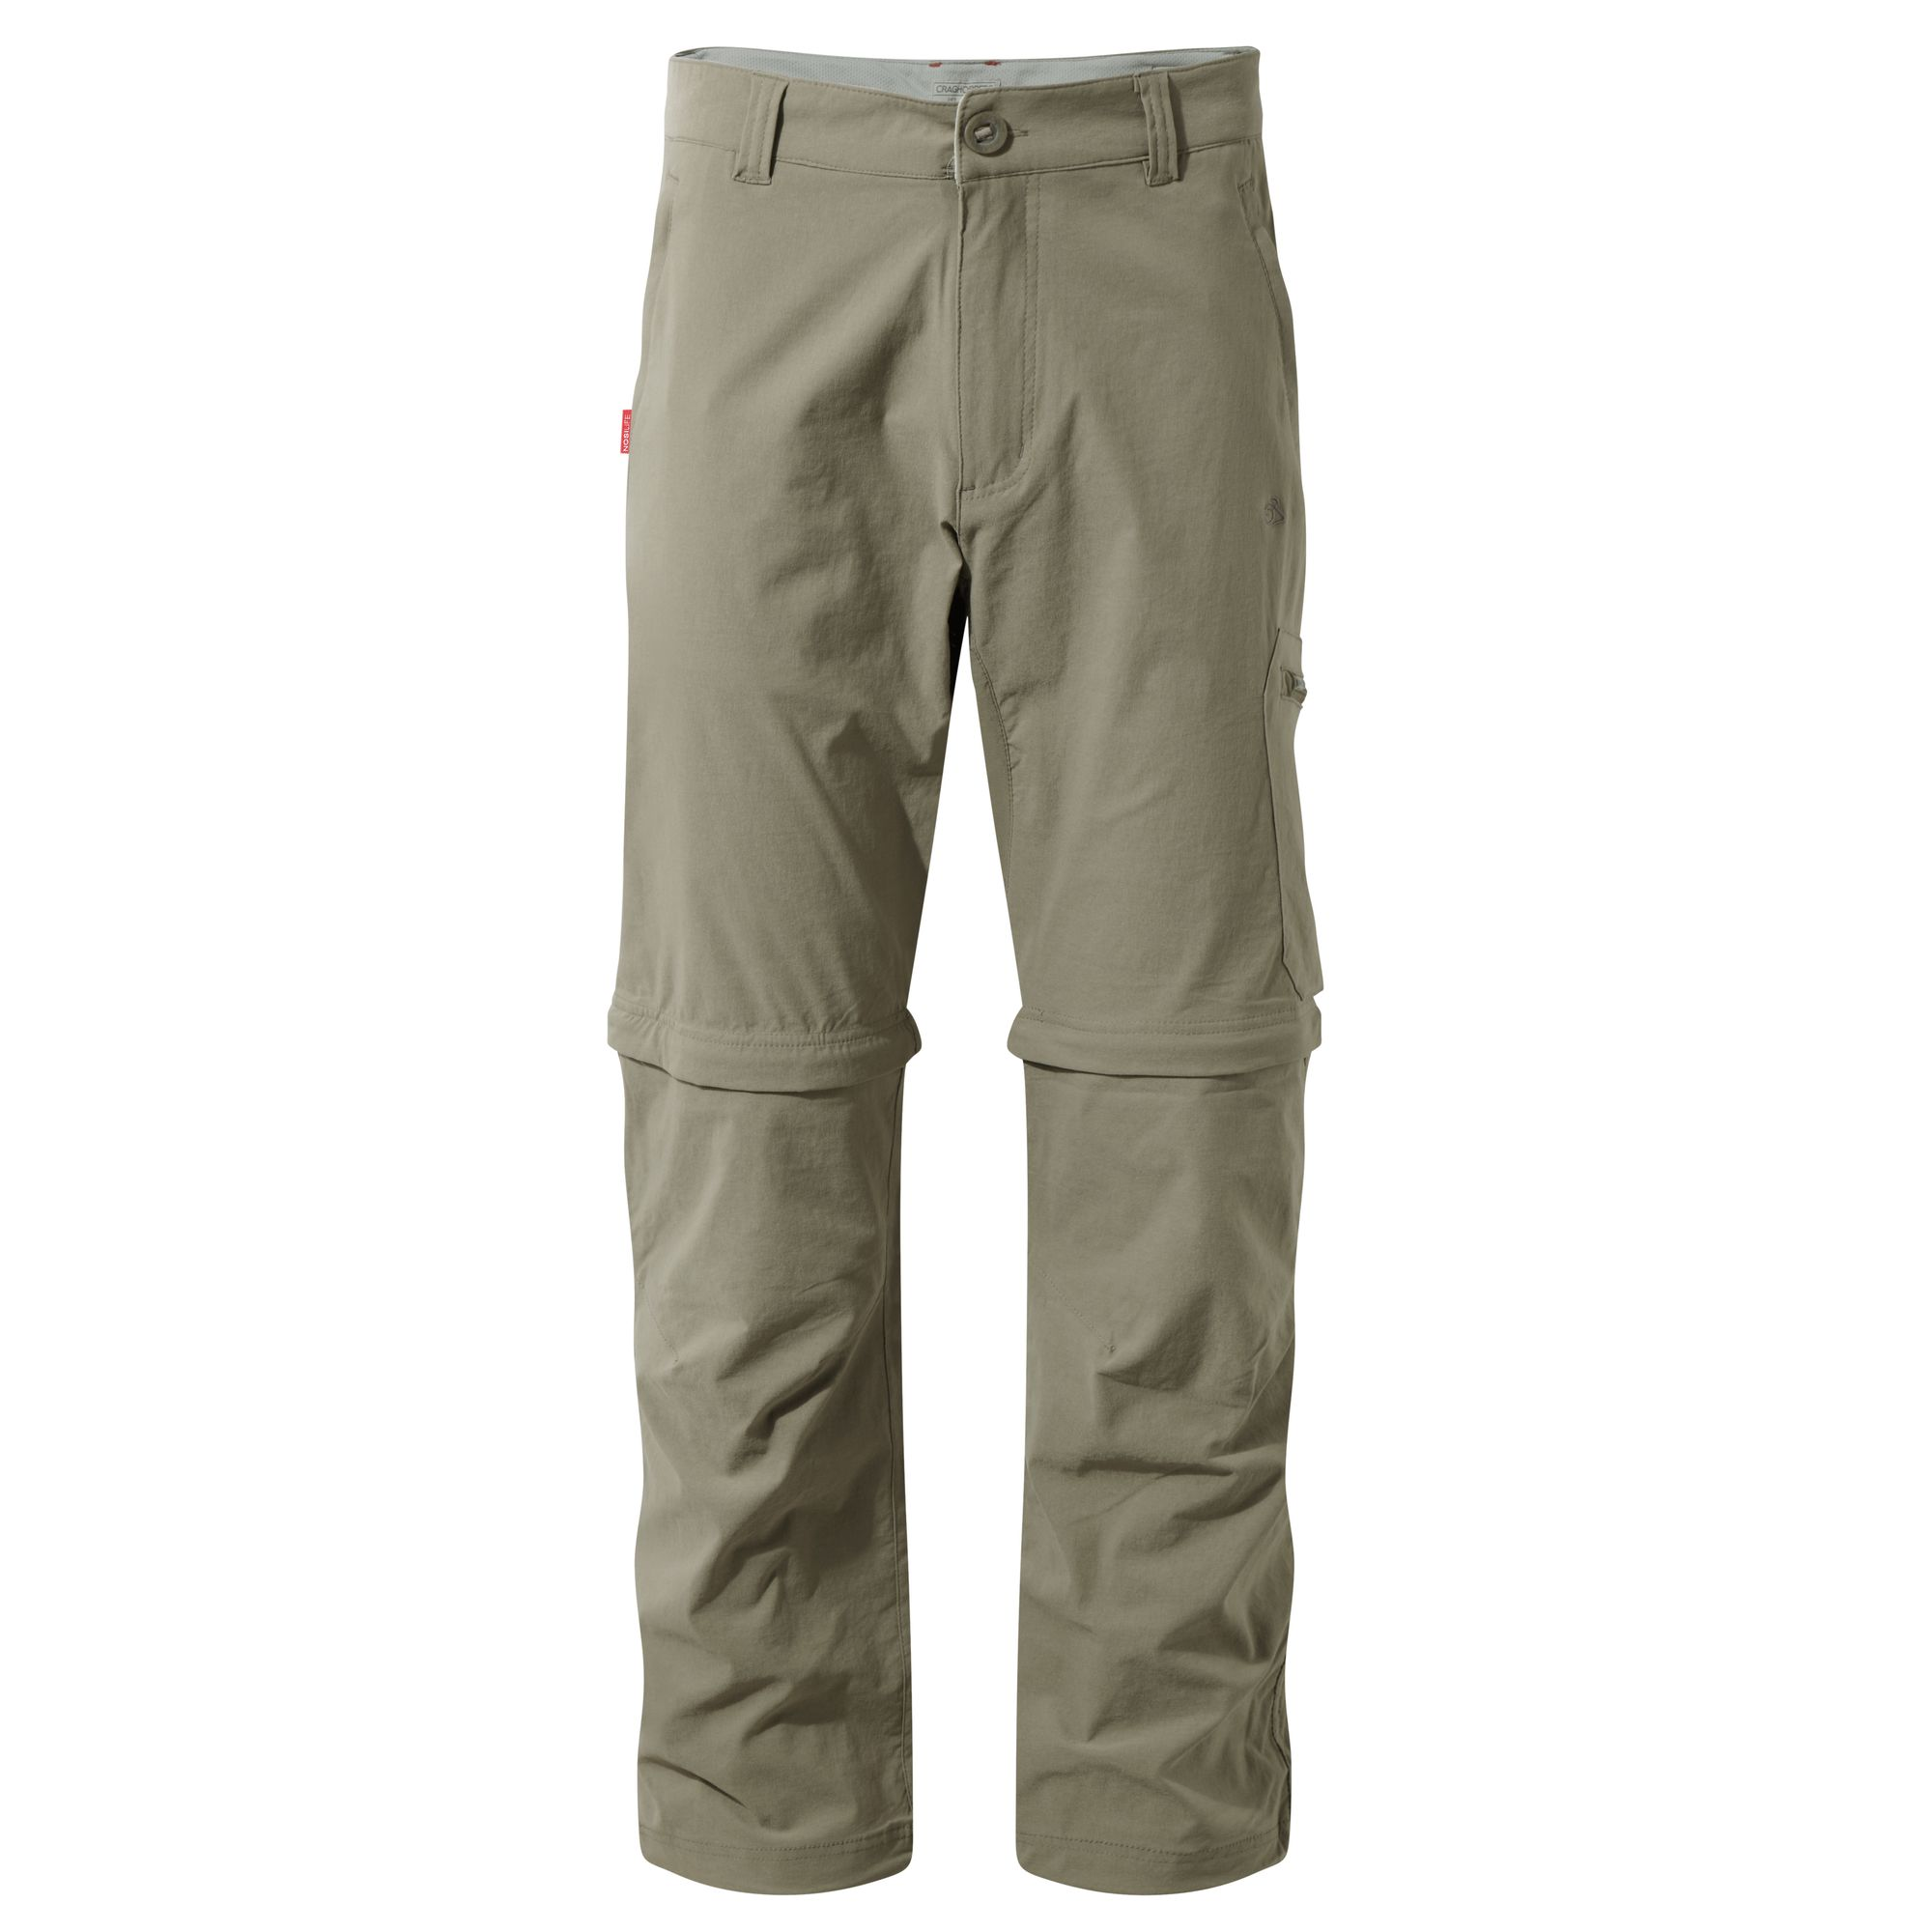 Craghoppers NosiLife Mens Convertible Insect Repellent Trousers (30L) (Pebble)